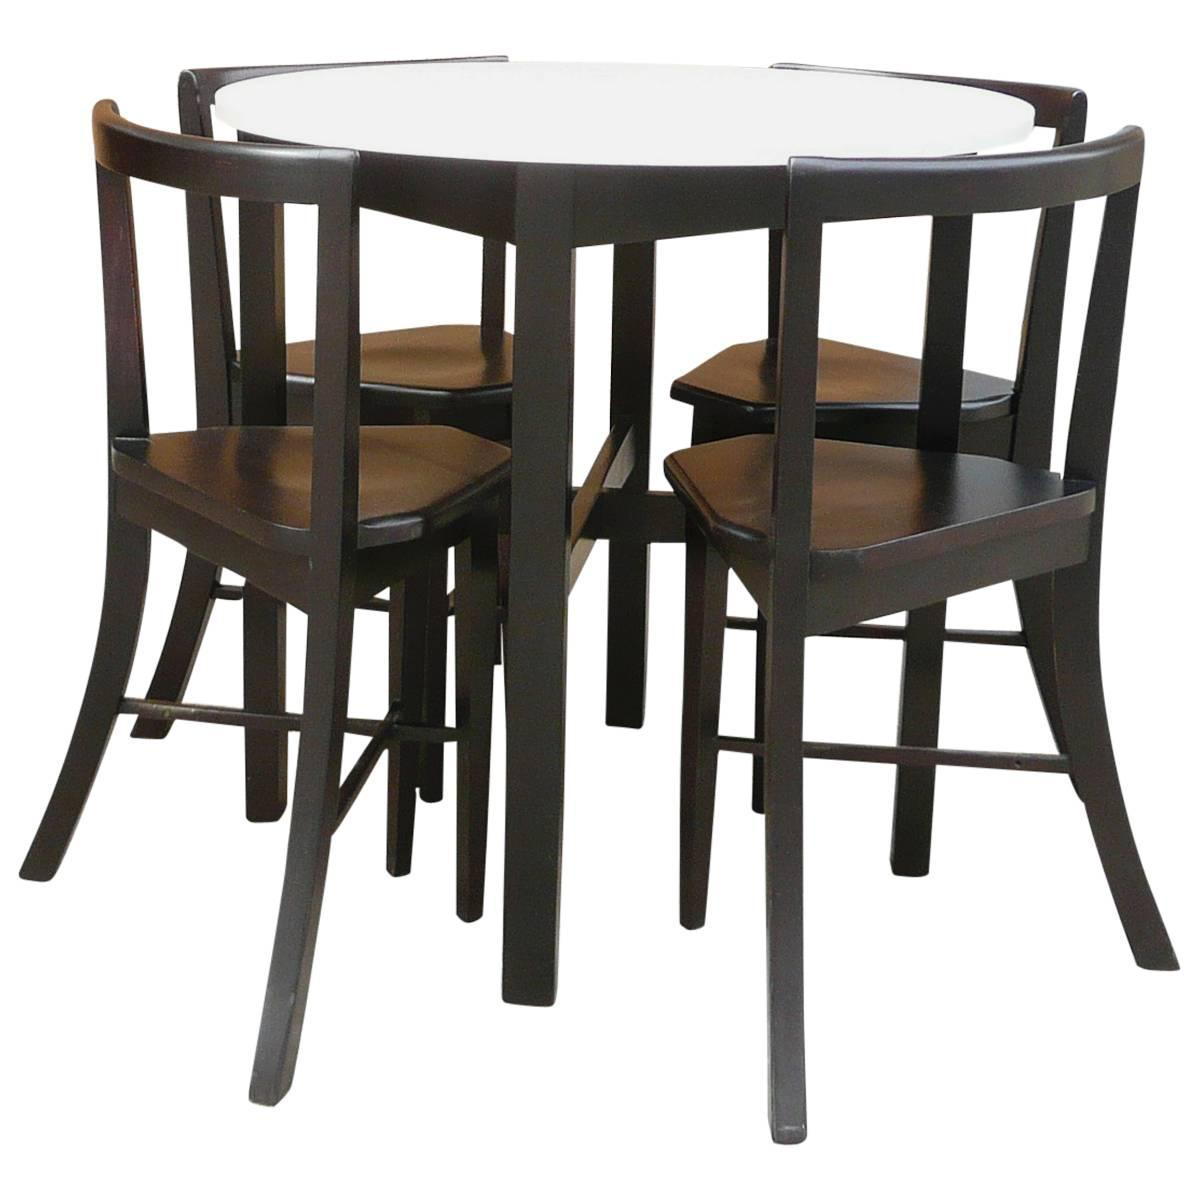 small round dining table and chairs theodore koch barber chair parts contoured set at 1stdibs